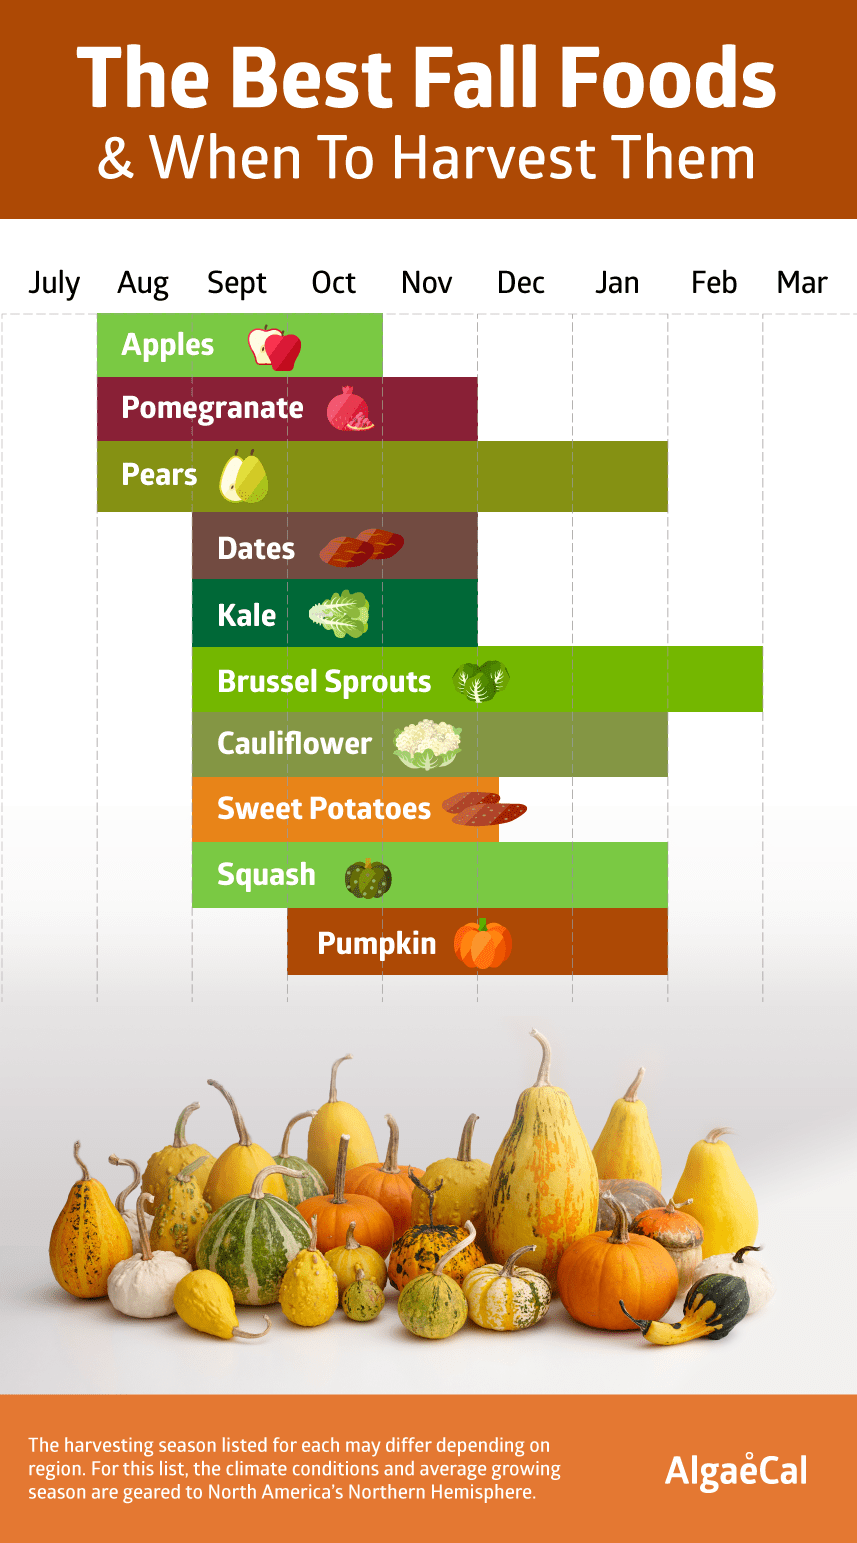 Top fall foods and their harvesting months